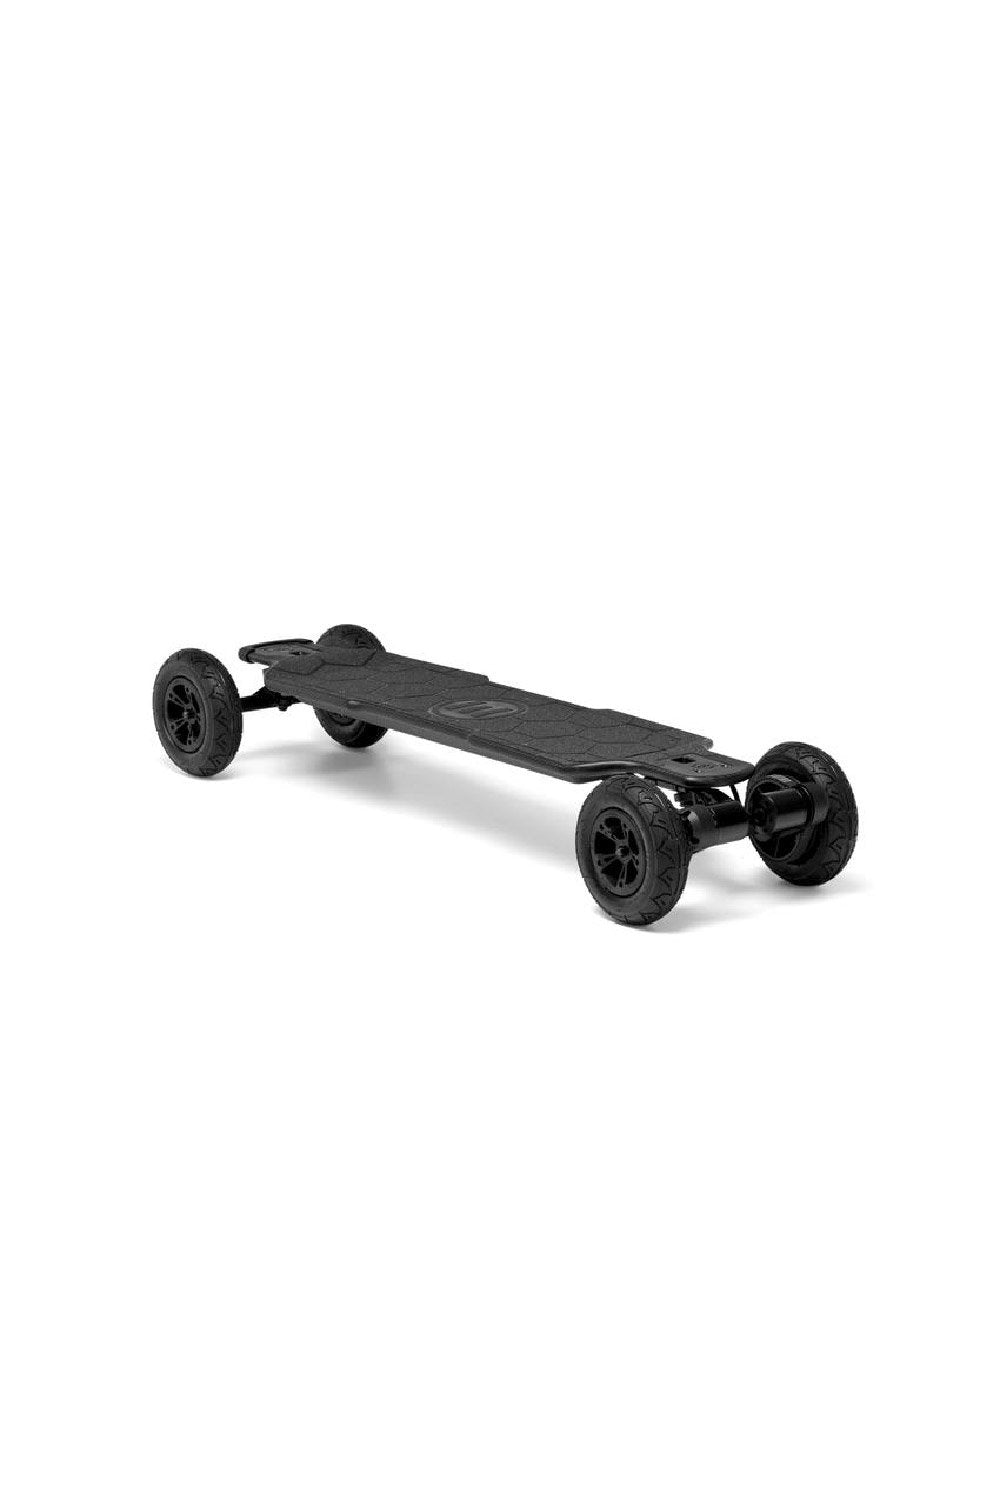 Evolve Electric Skateboards GTR Carbon Series